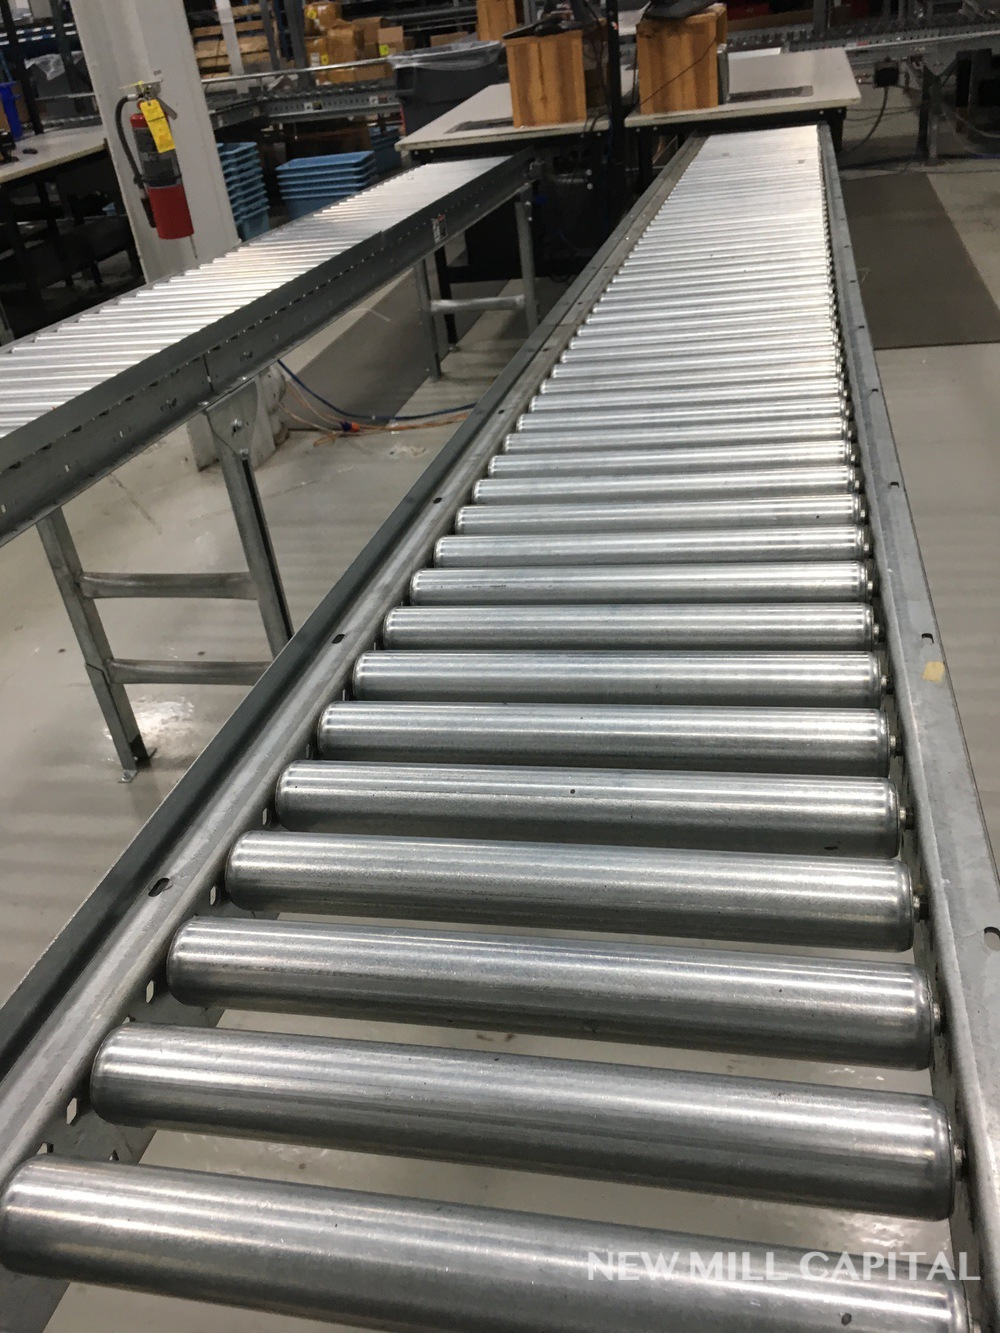 Lot 61 - Spring Assisted Roller Conveyor & Gate, Approx 20ft OA Length, 15in Wide Rol | Rig Fee: $150